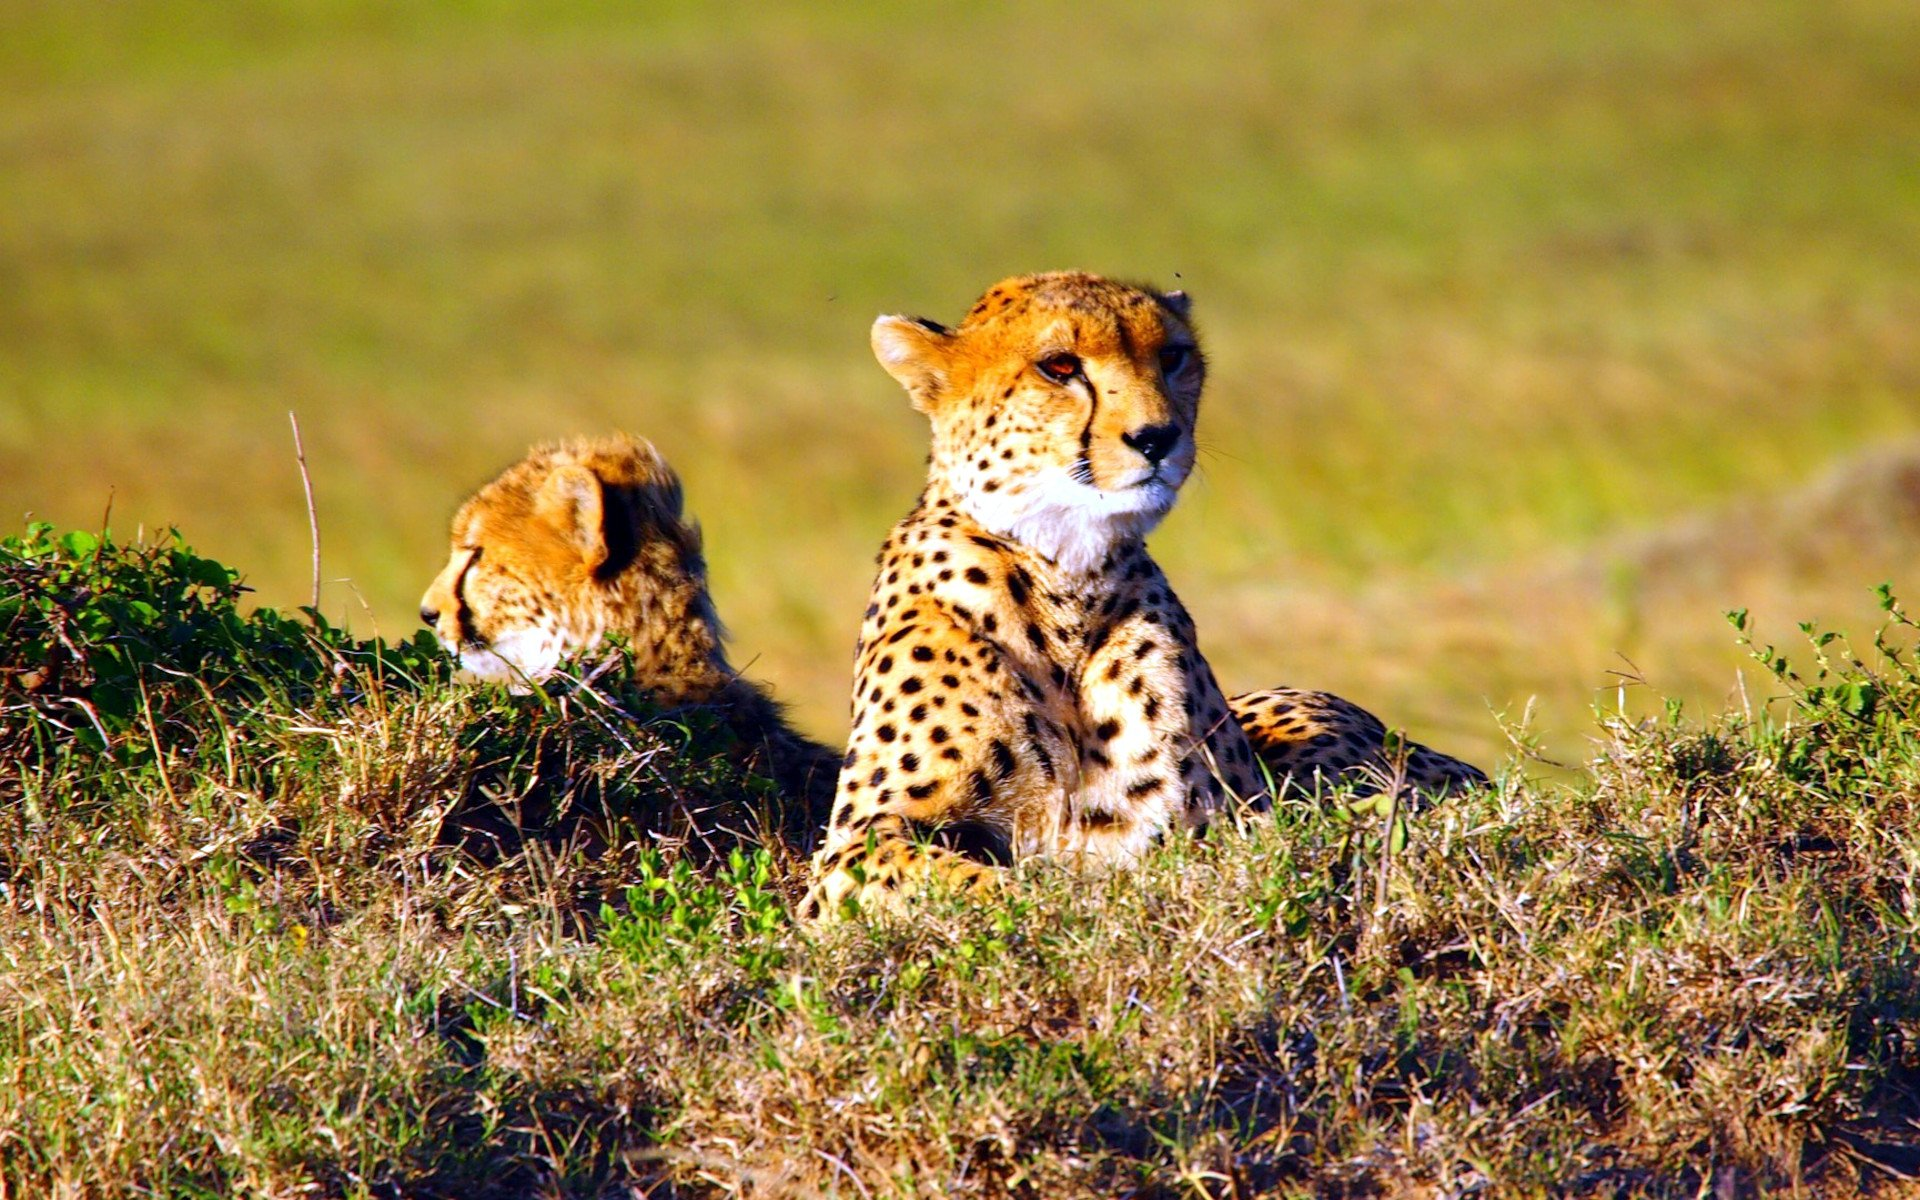 The high travel season in Kenya starts in January and ends in March. Suppose you are planning a safari with the end game of spotting the diversity of Kenya's wildlife. In that case, this is the season to plan your safari in.